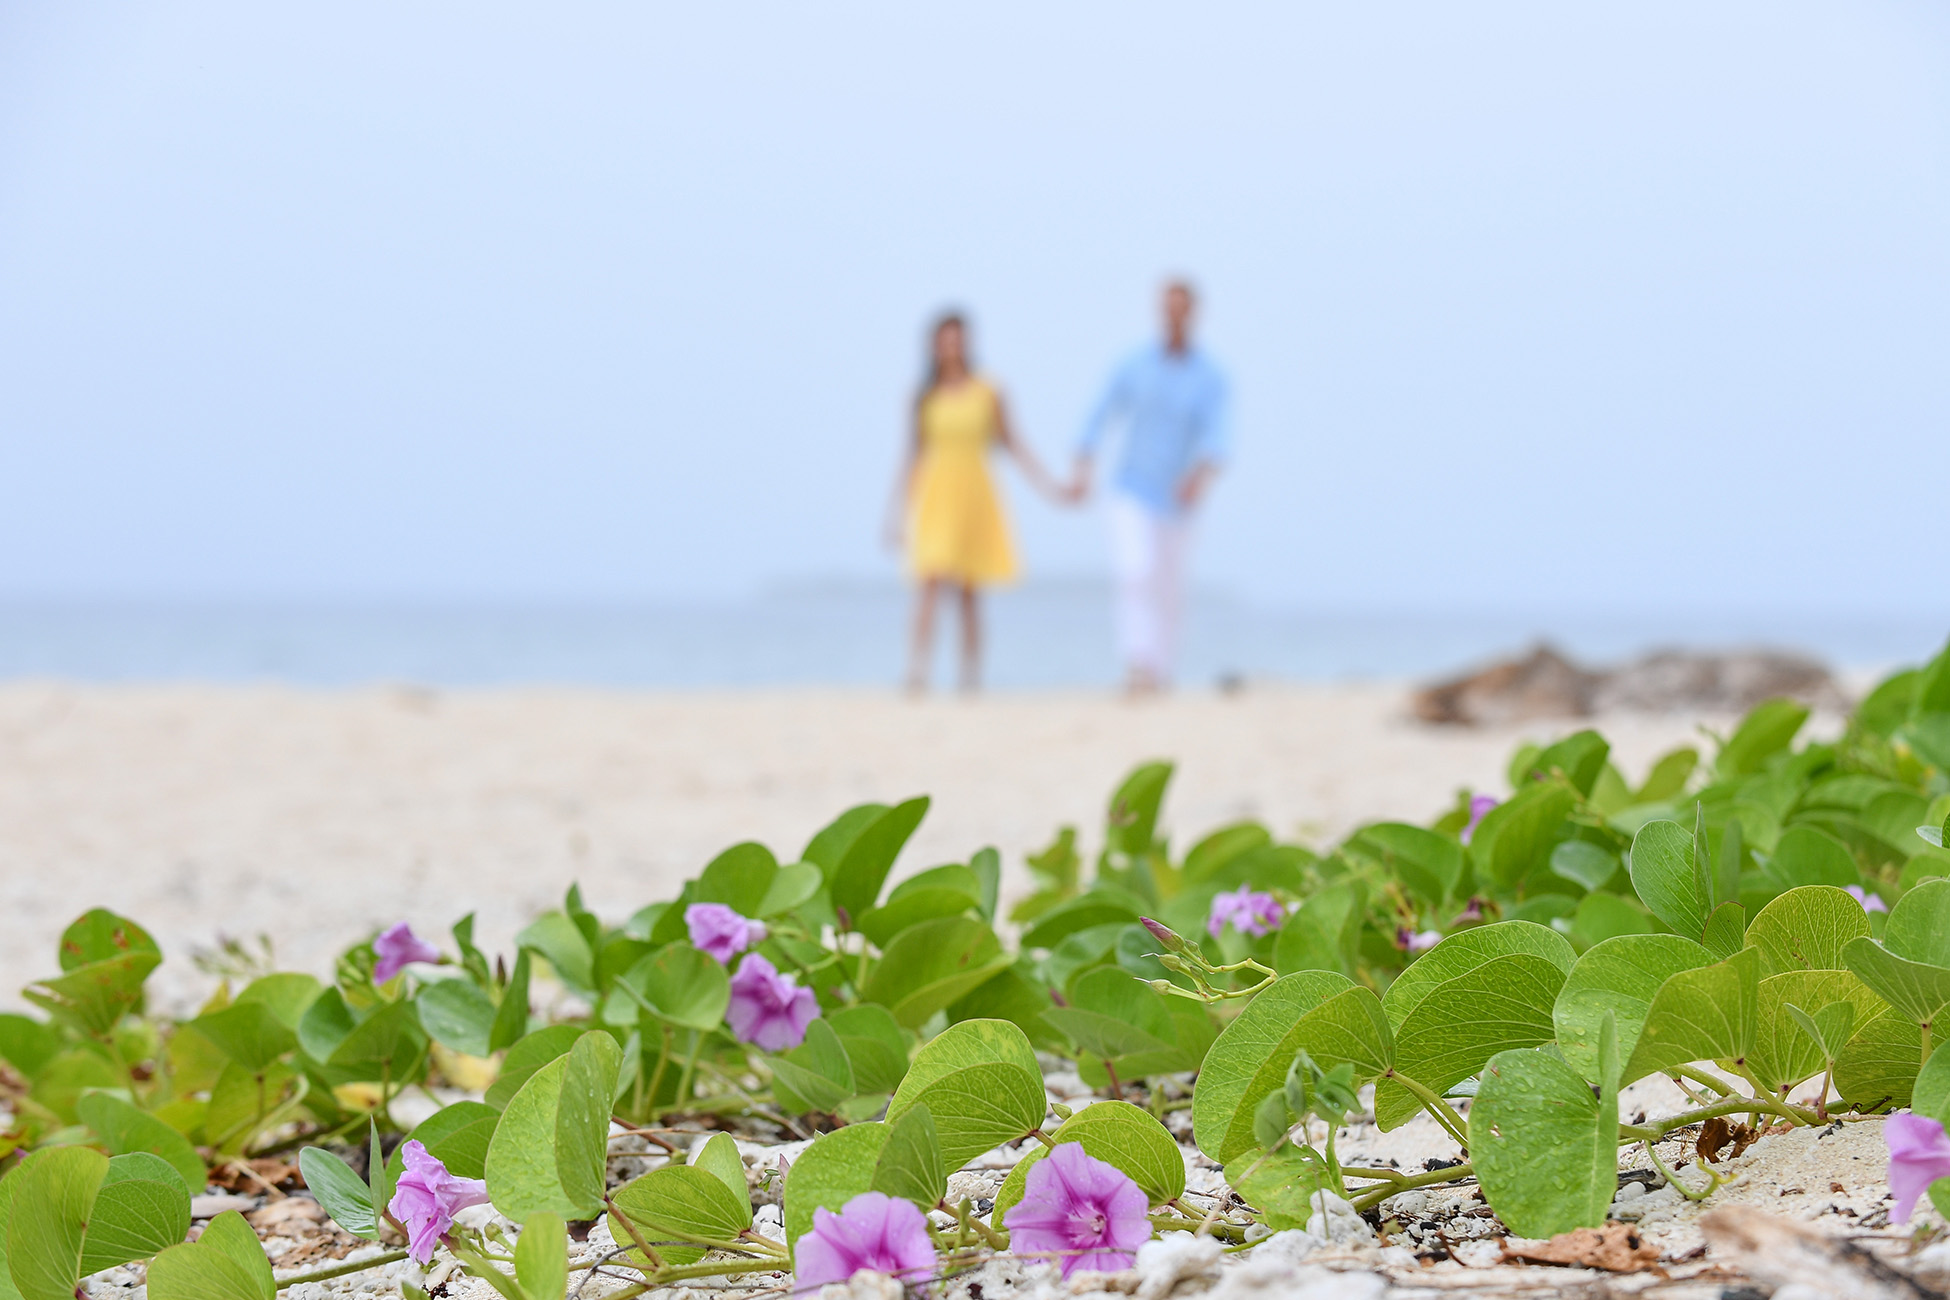 The beach morning glory flower in the foreground with the engaged couple in the background